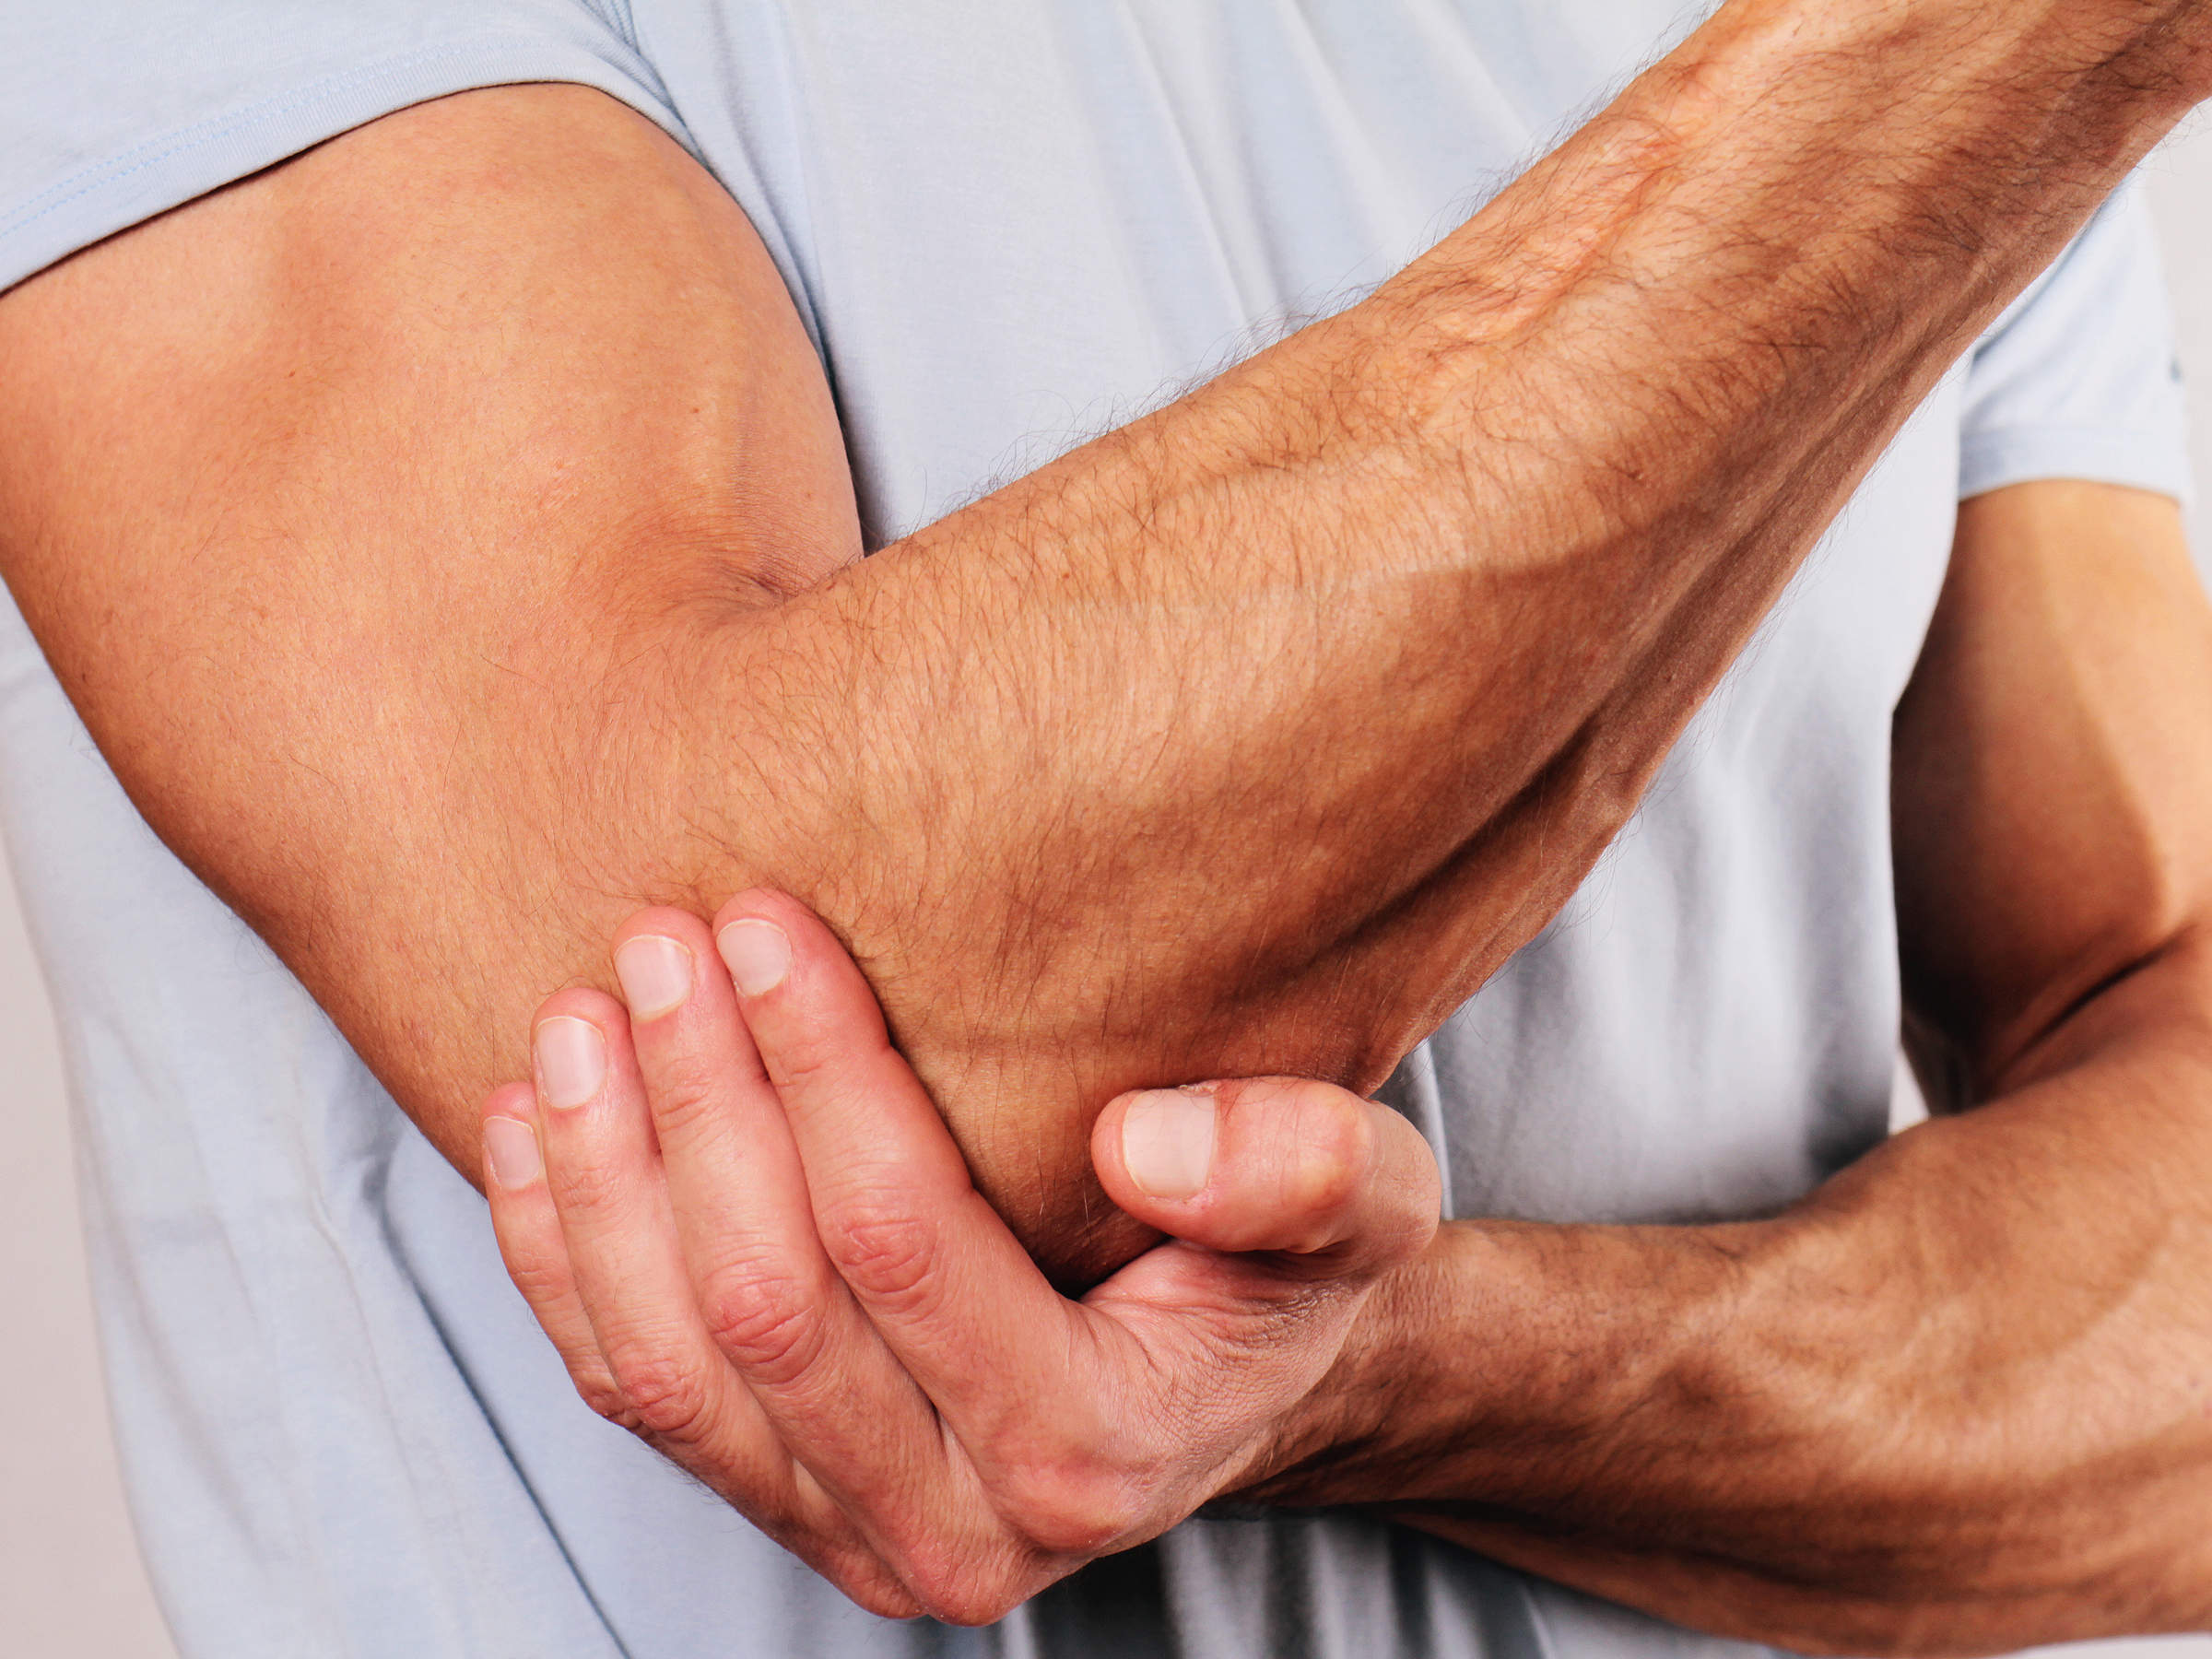 Watch Psoriatic Arthritis: 5 Simple Ways to Protect Your Joints video